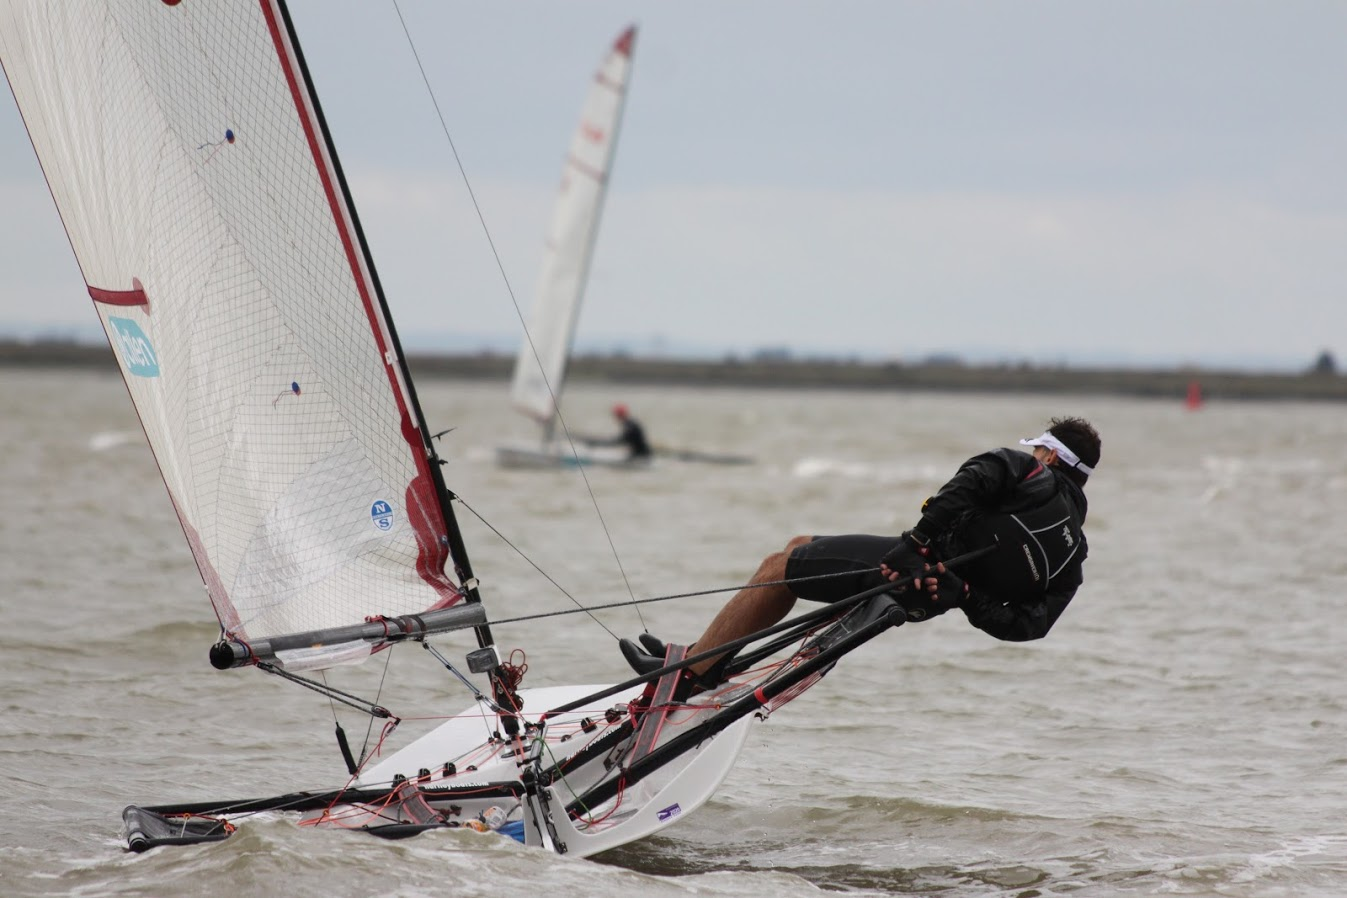 Blaze dinghy mid tack on the river crouch..